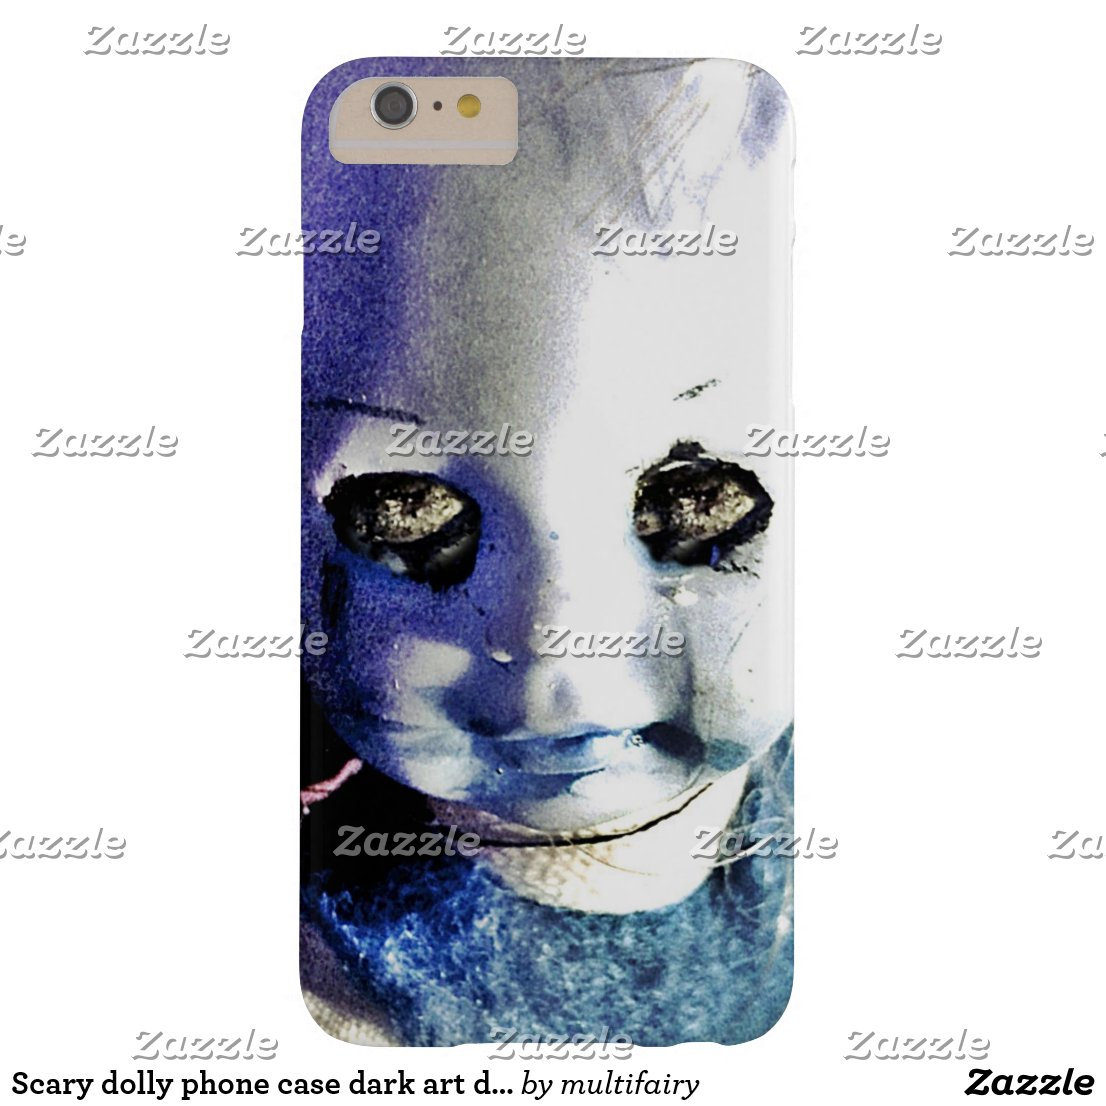 Scary dolly phone case dark art doll